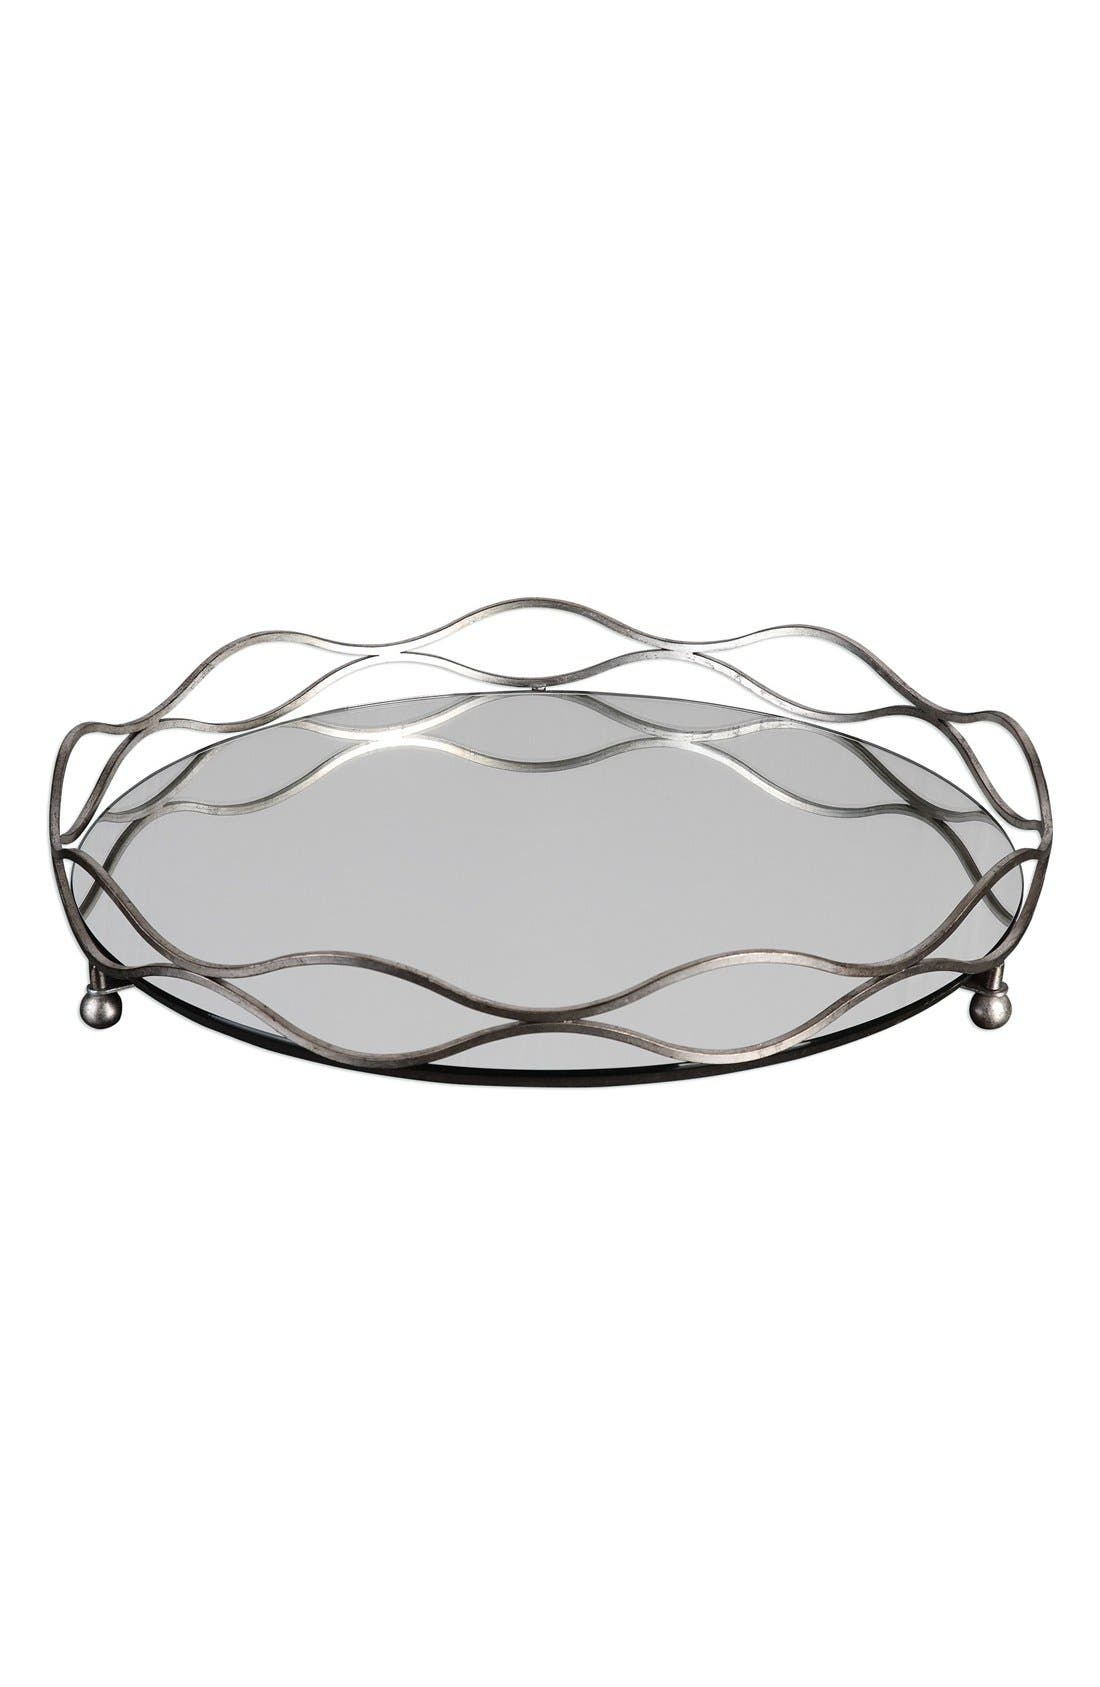 Uttermost Mirrored Tray